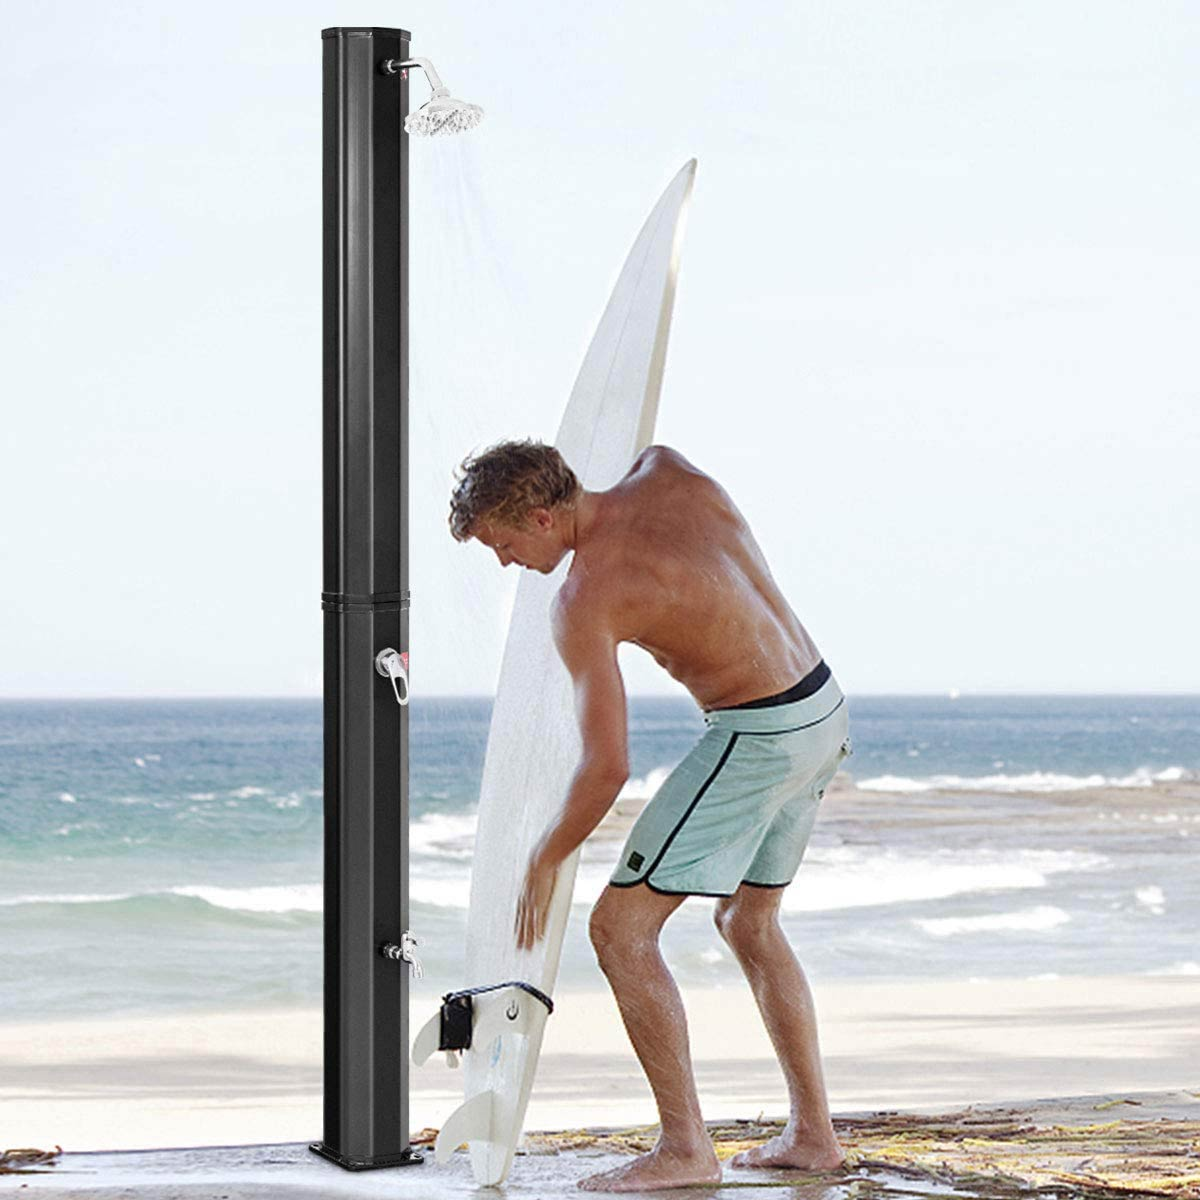 Man showering off his surfboard on the beach